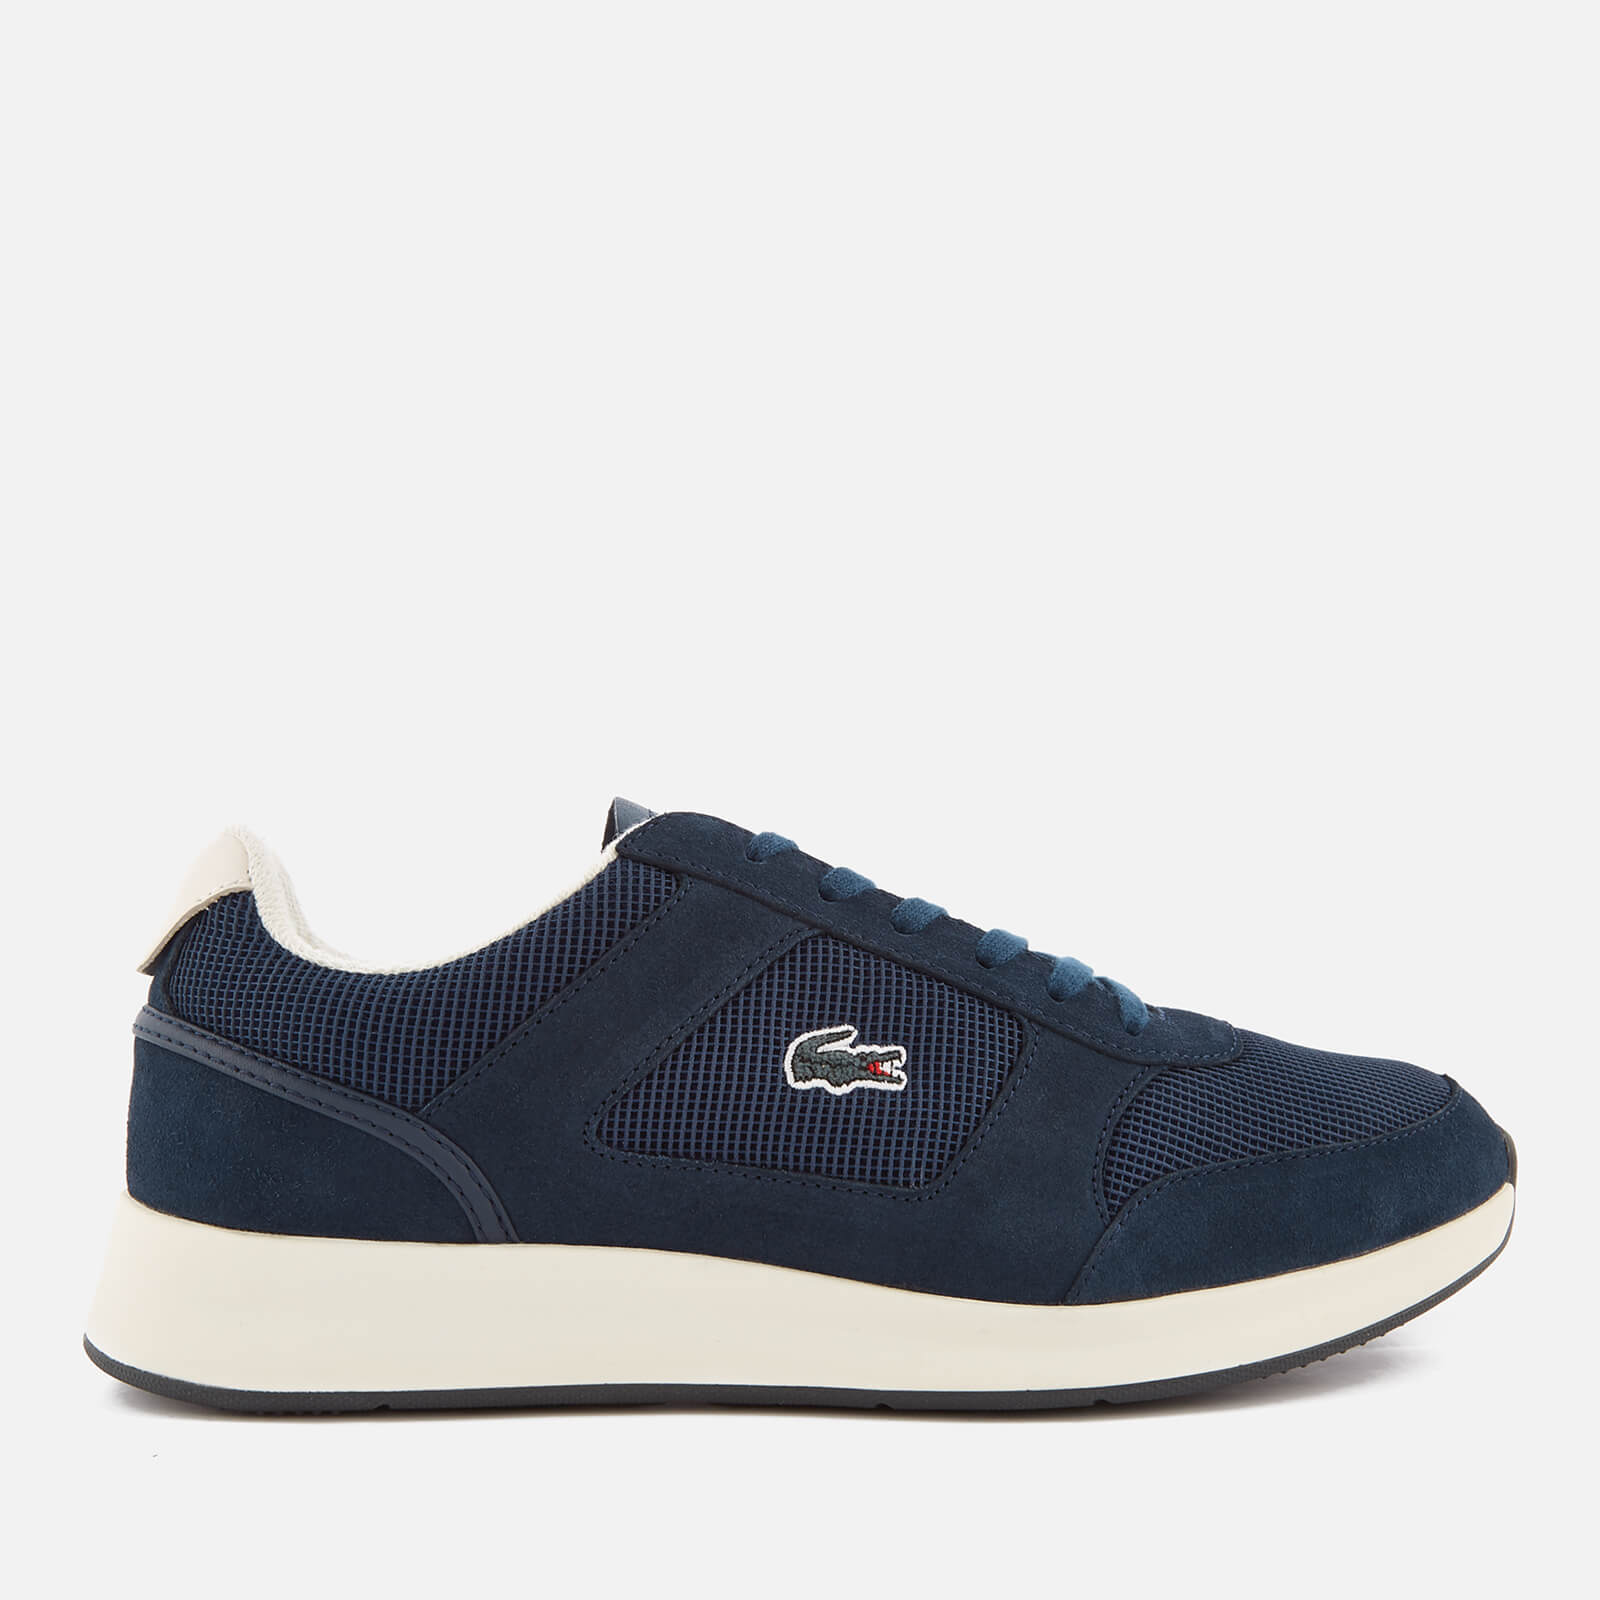 9dd889c8b3107 Lacoste Men's Joggeur 118 1 Runner Trainers - Navy/Off White | FREE UK  Delivery | Allsole